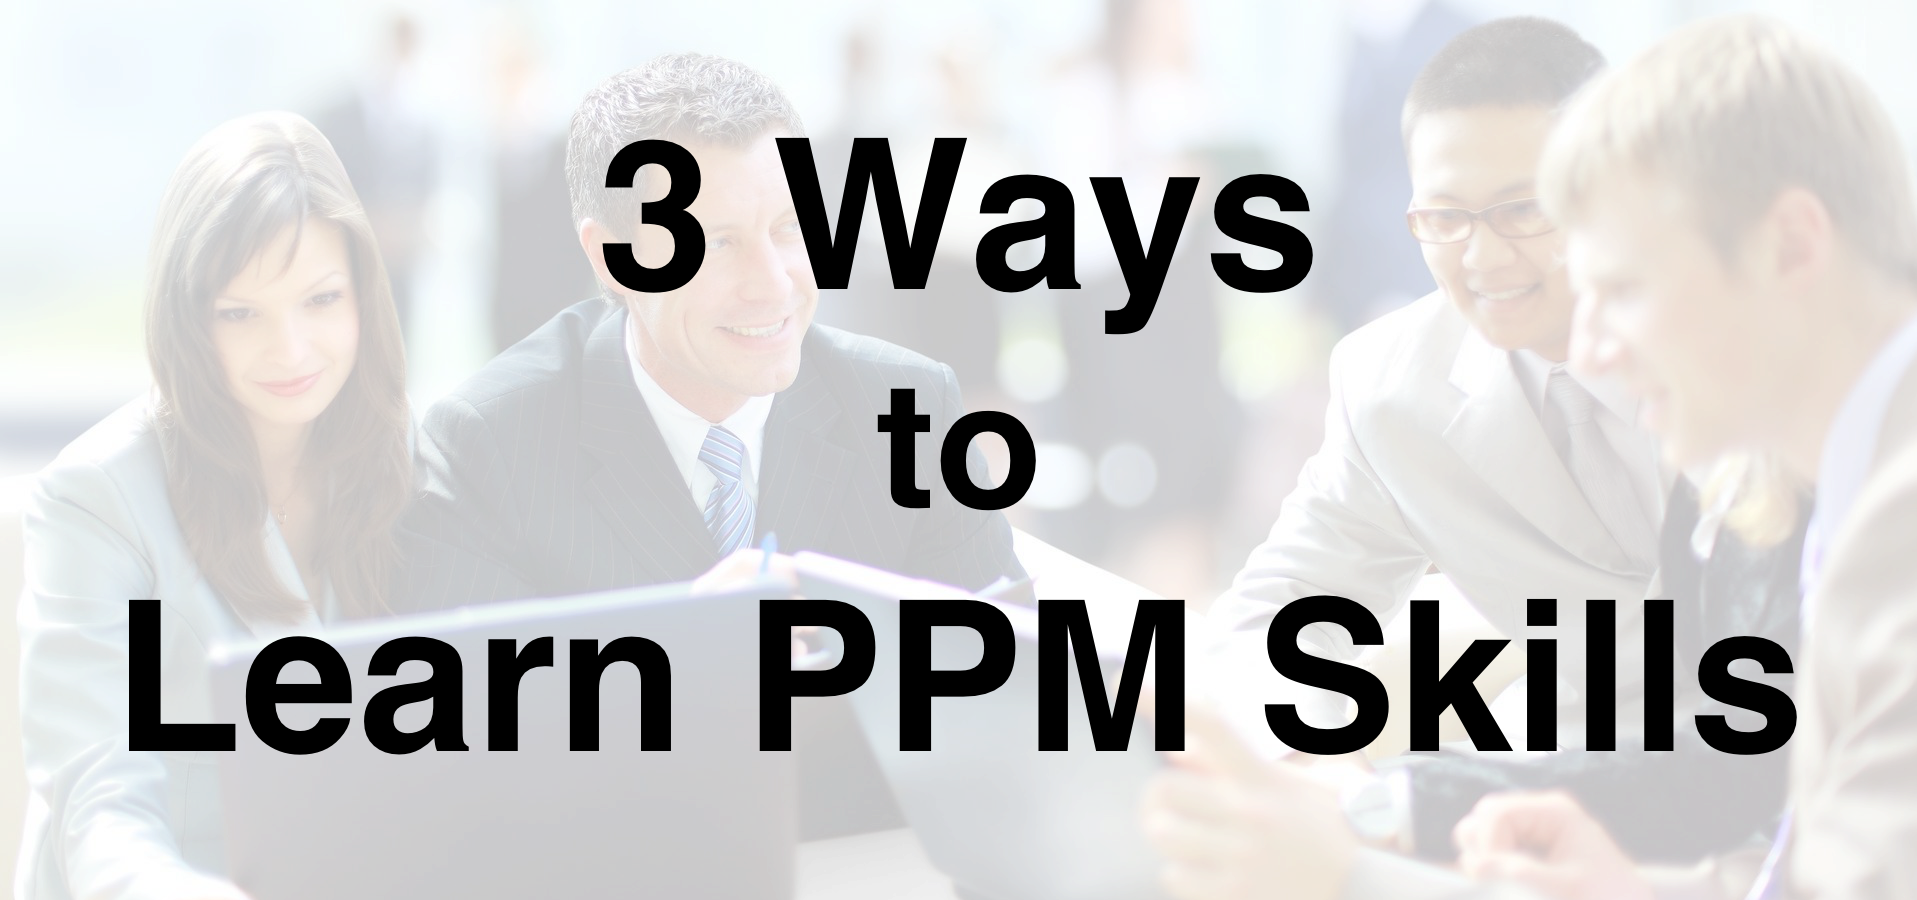 3 Ways to Learn PPM Skills